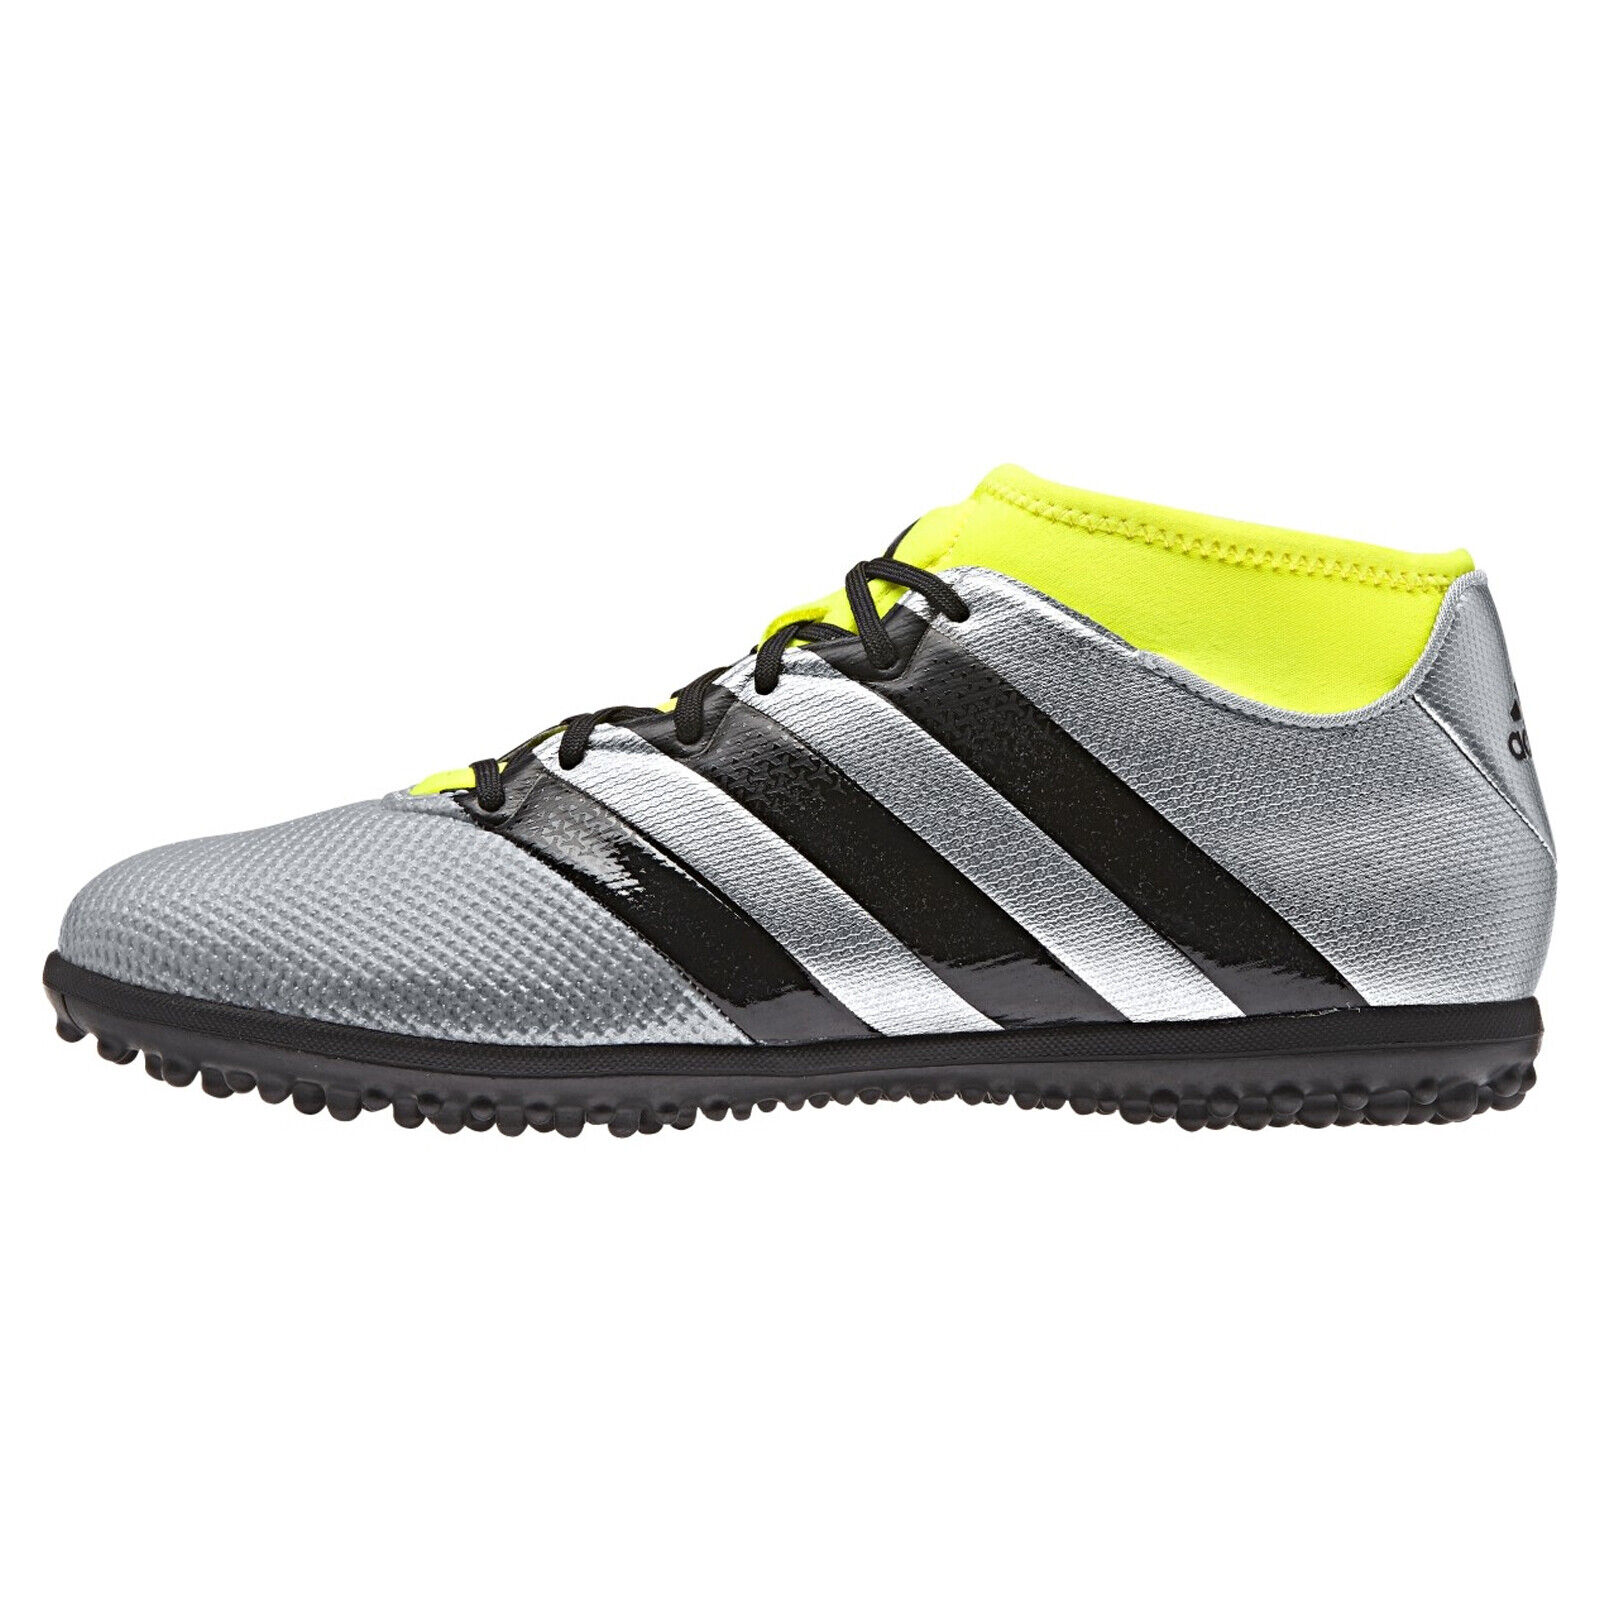 adidas Ace 17.4 TF Astro Turf Trainers